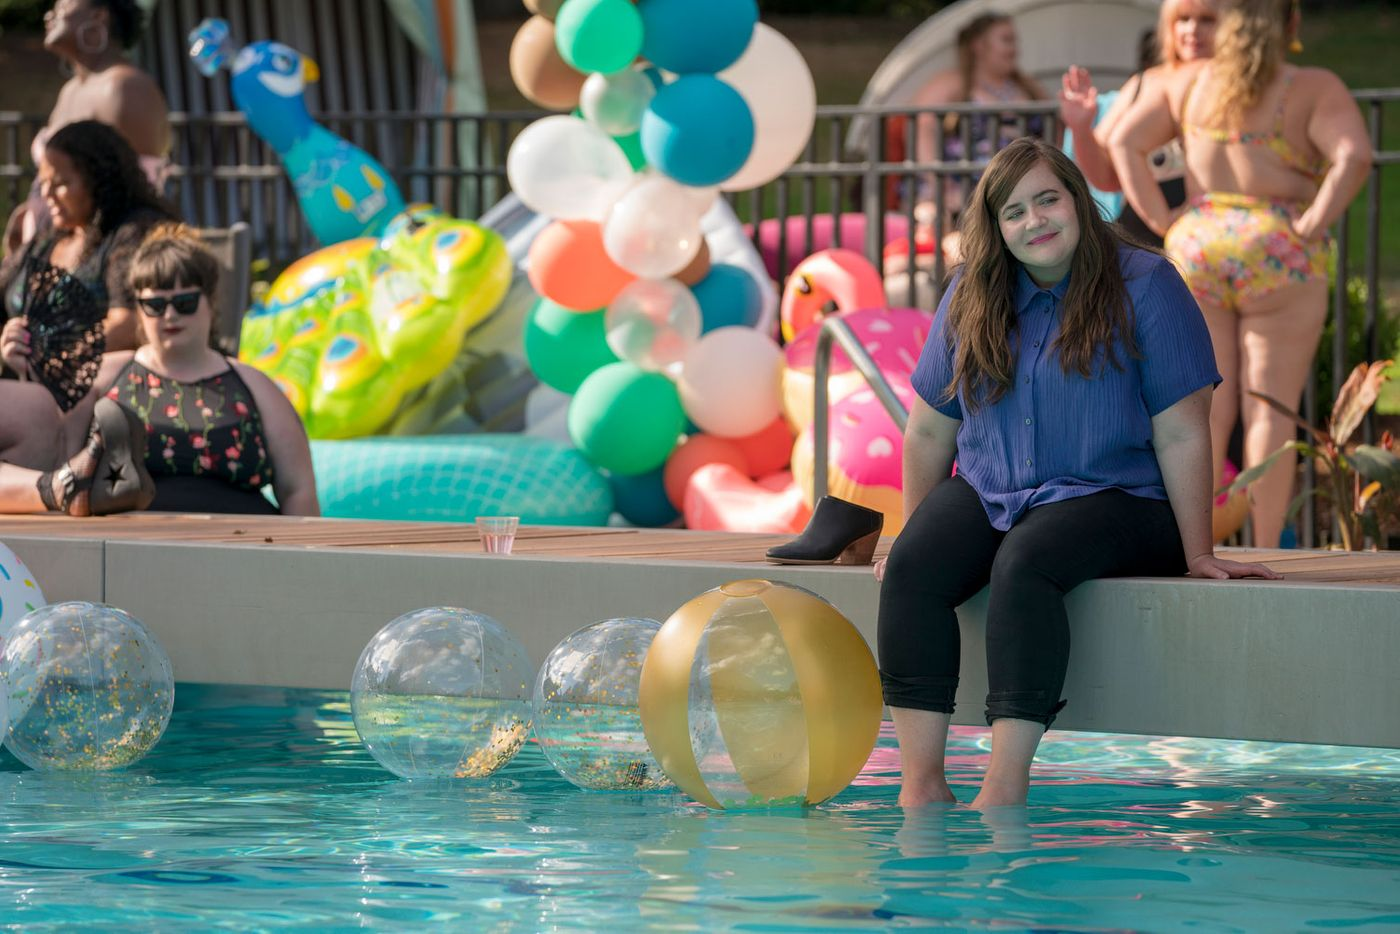 4ecad20cc8 How Hulu's 'Shrill' Made Its 'Fat Babe Pool Party' Episode